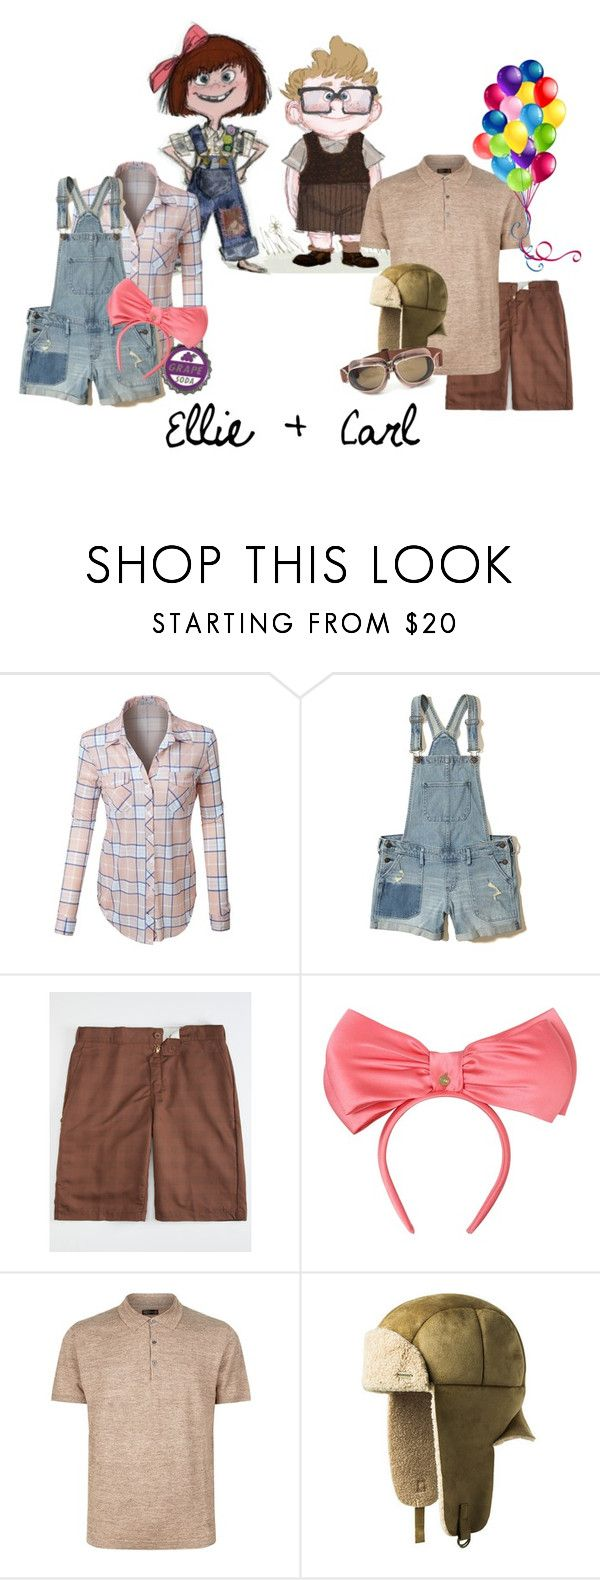 """""""Ellie and Carl Fredrickson"""" by krgood7 ❤ liked on Polyvore featuring LE3NO, Hollister Co., Dickies, Federica Moretti, Corneliani, kangol, dug, Kevin, russel and paradisefalls"""